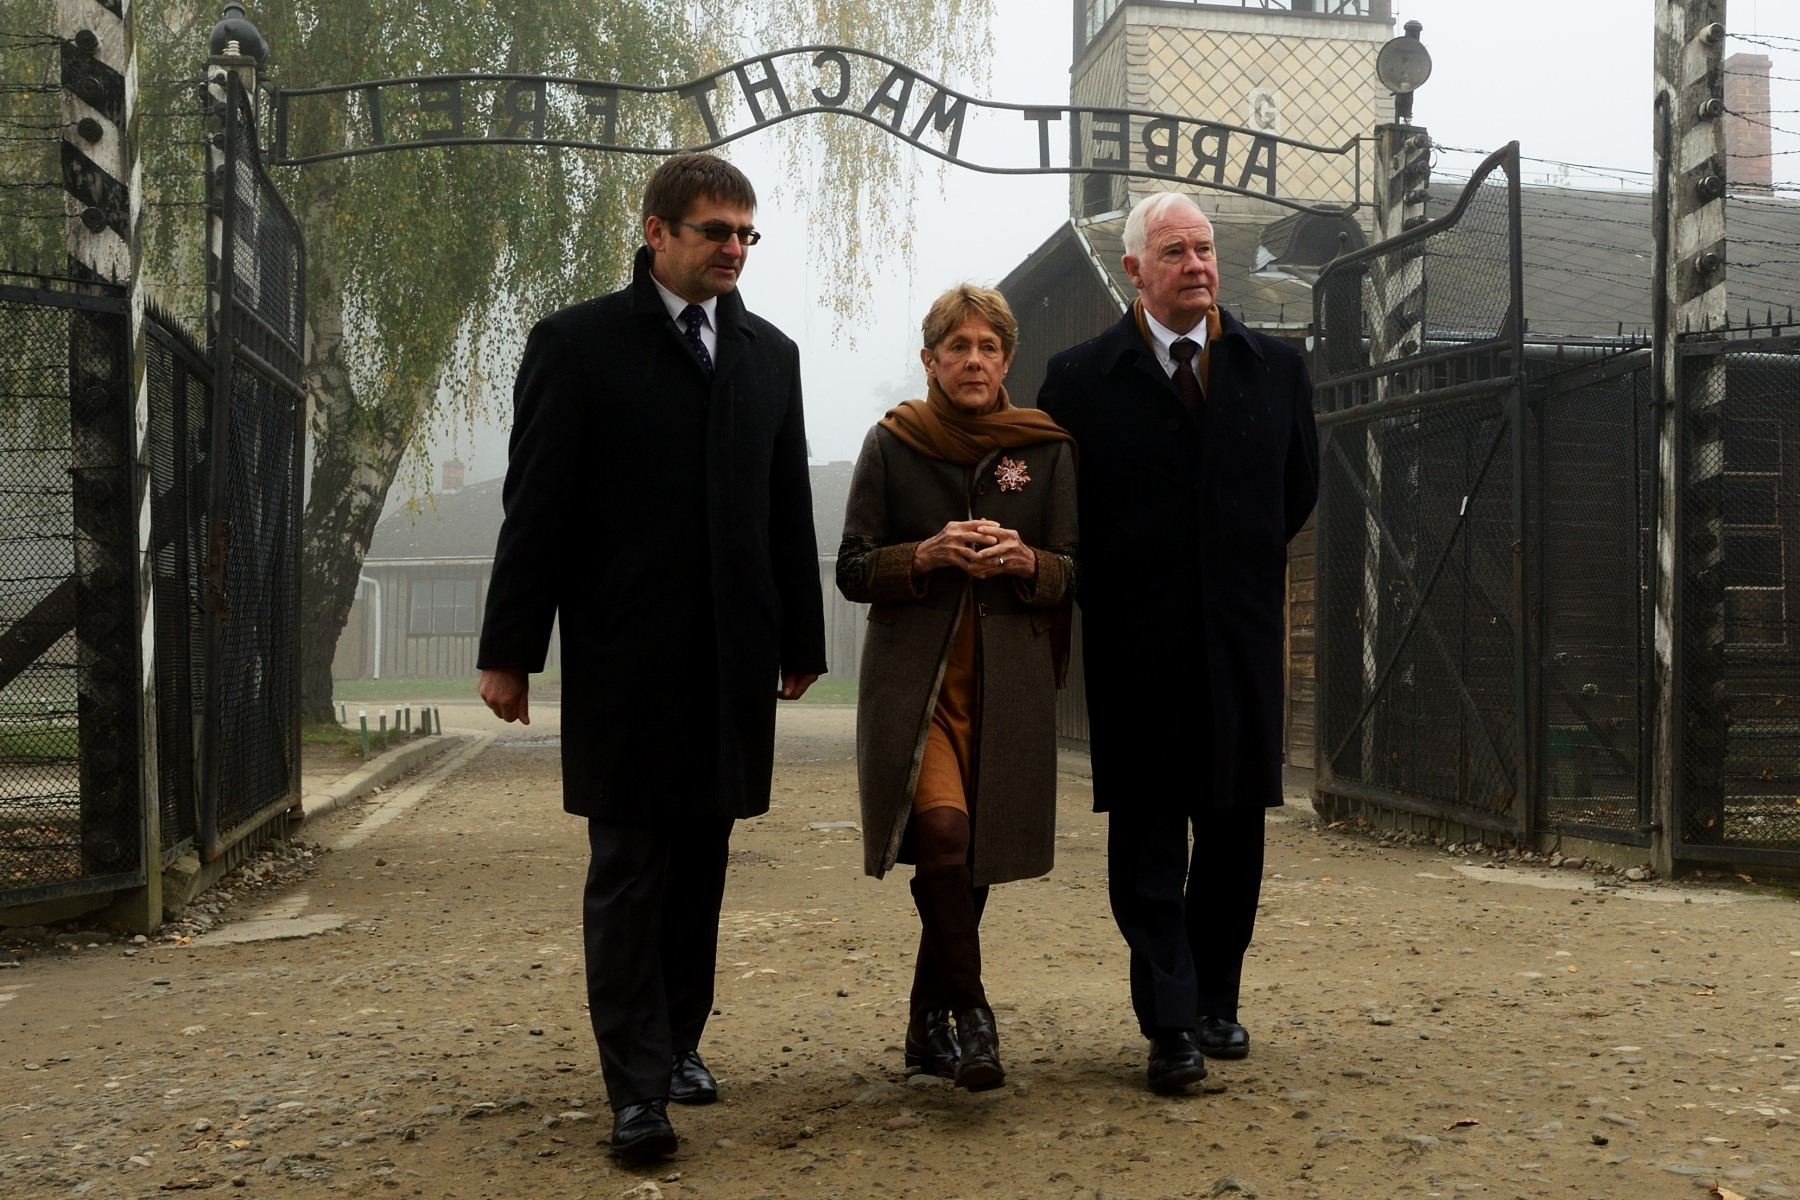 Their Excellencies and Canadian delegates visited the Auschwitz-Birkenau State Museum and Memorial.